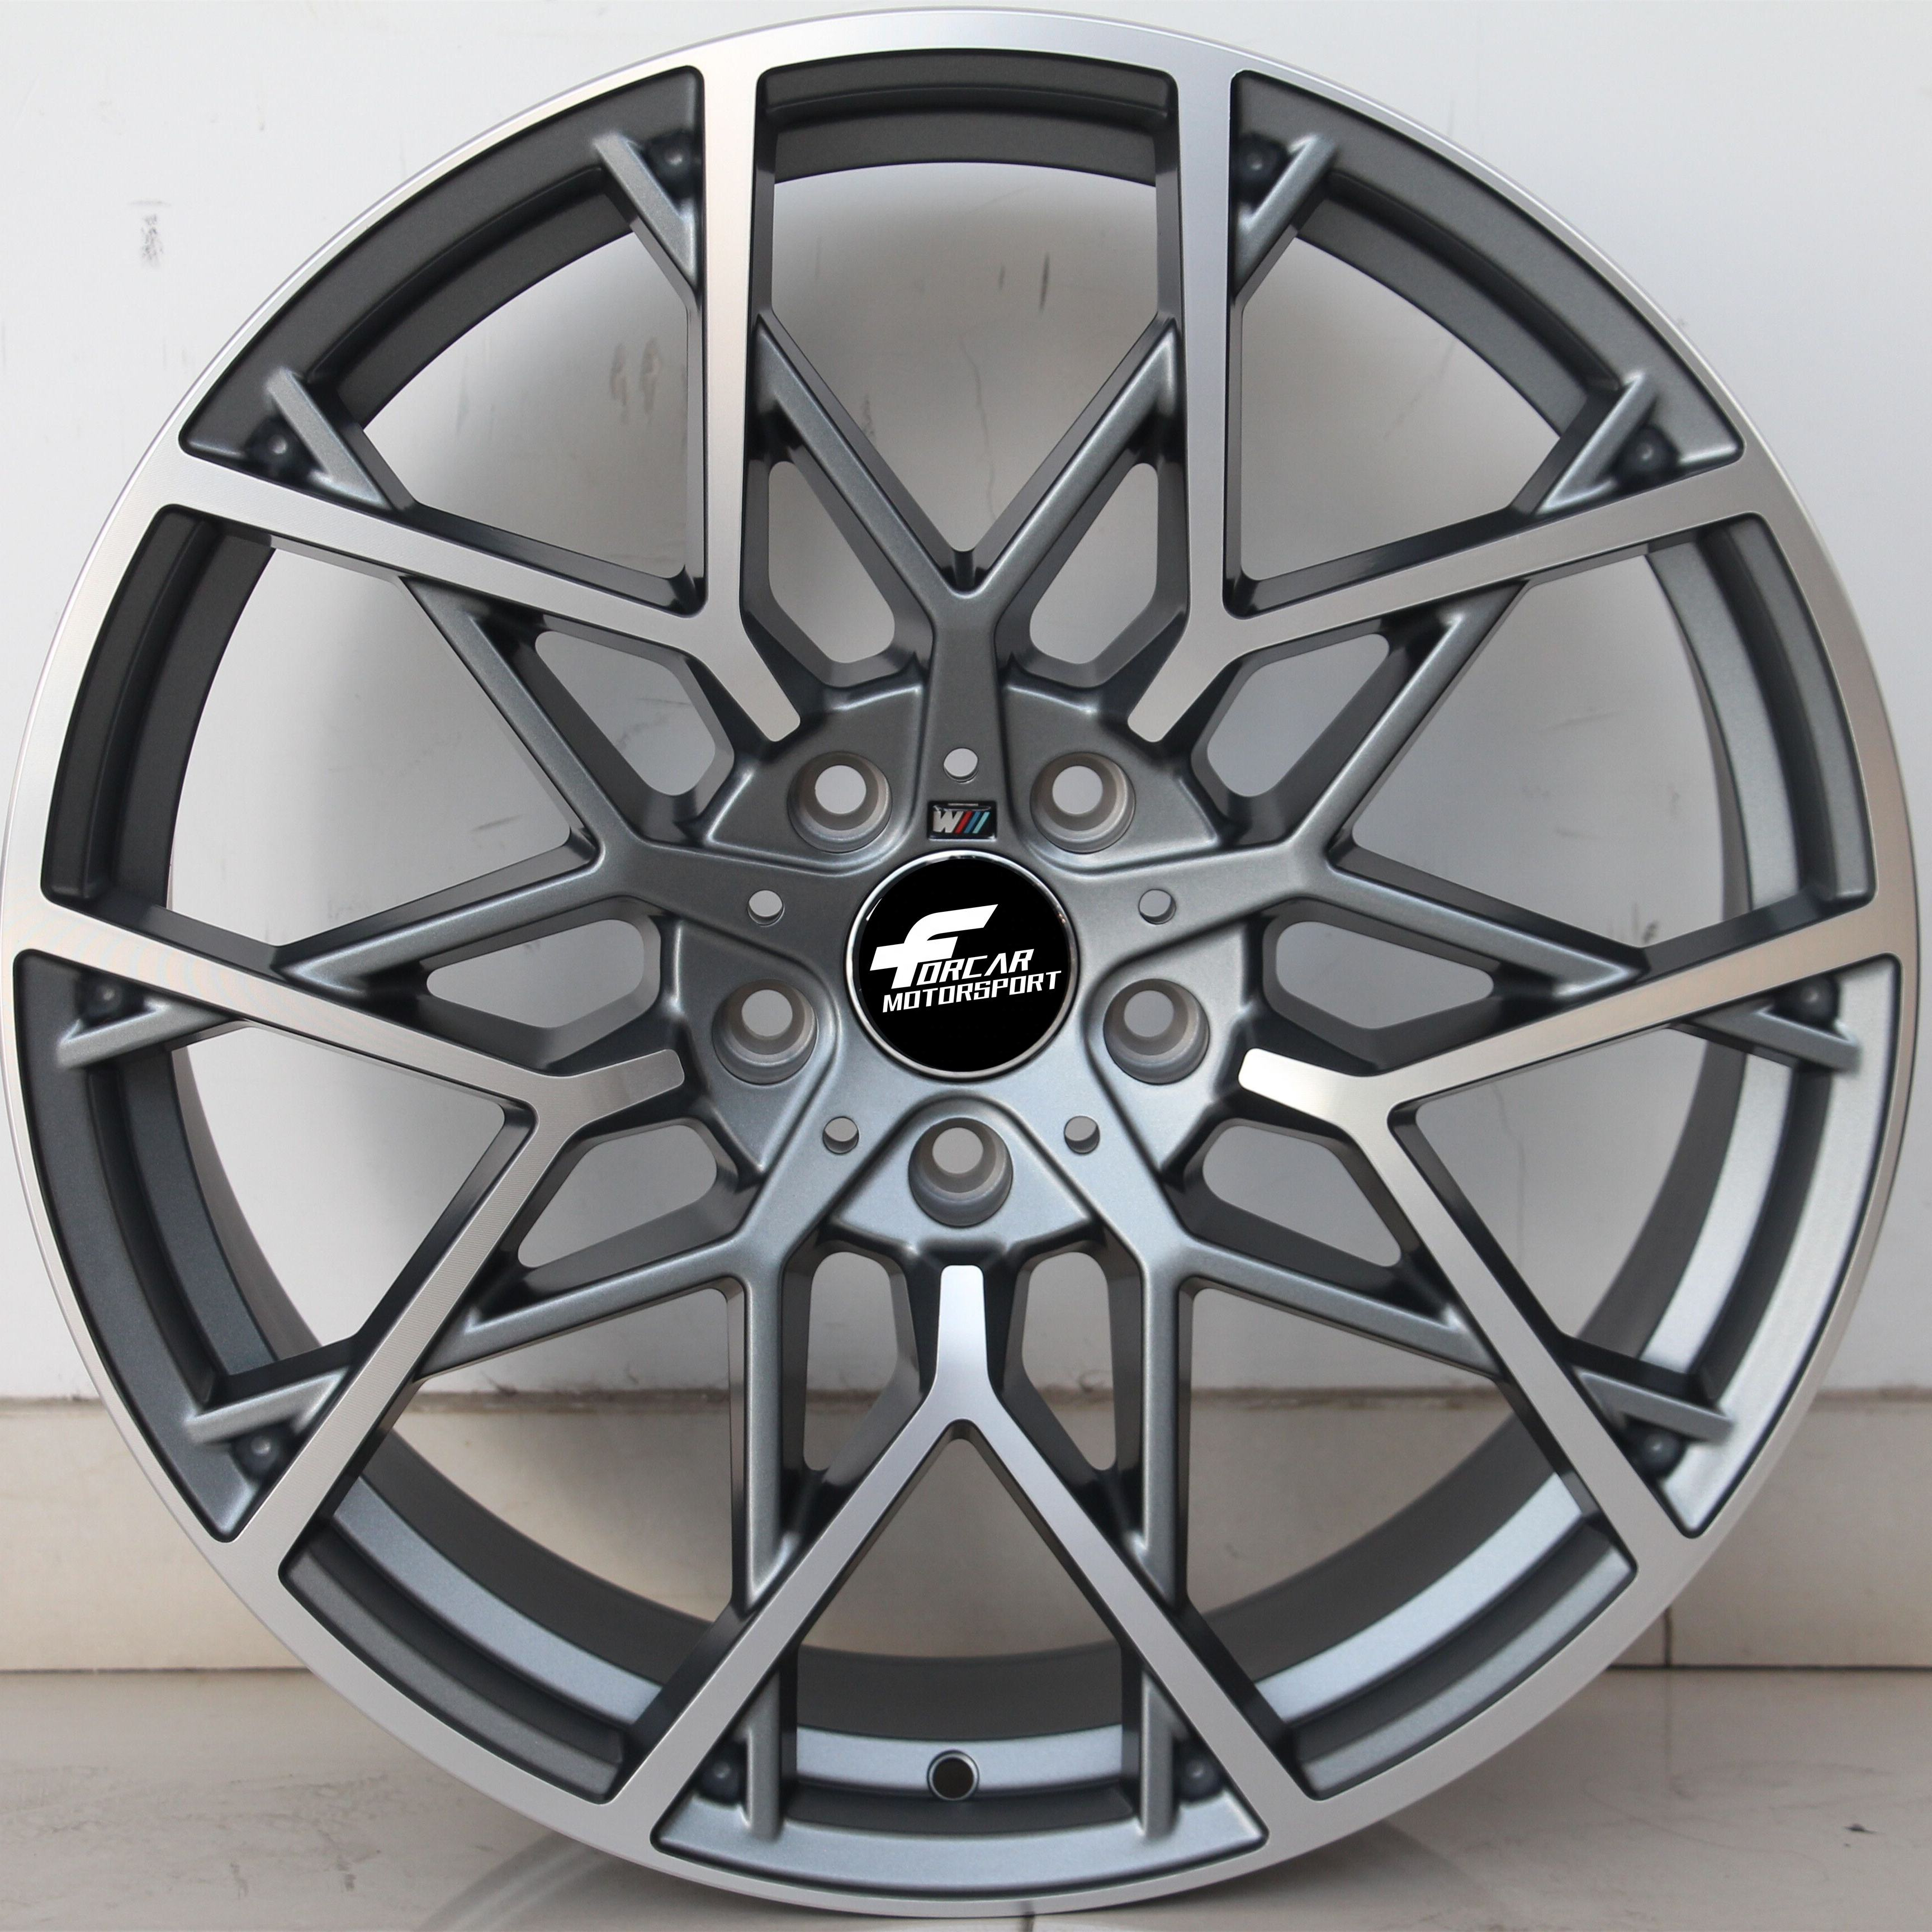 China Replica Bmw Wheels China Replica Bmw Wheels Manufacturers And Suppliers On Alibaba Com